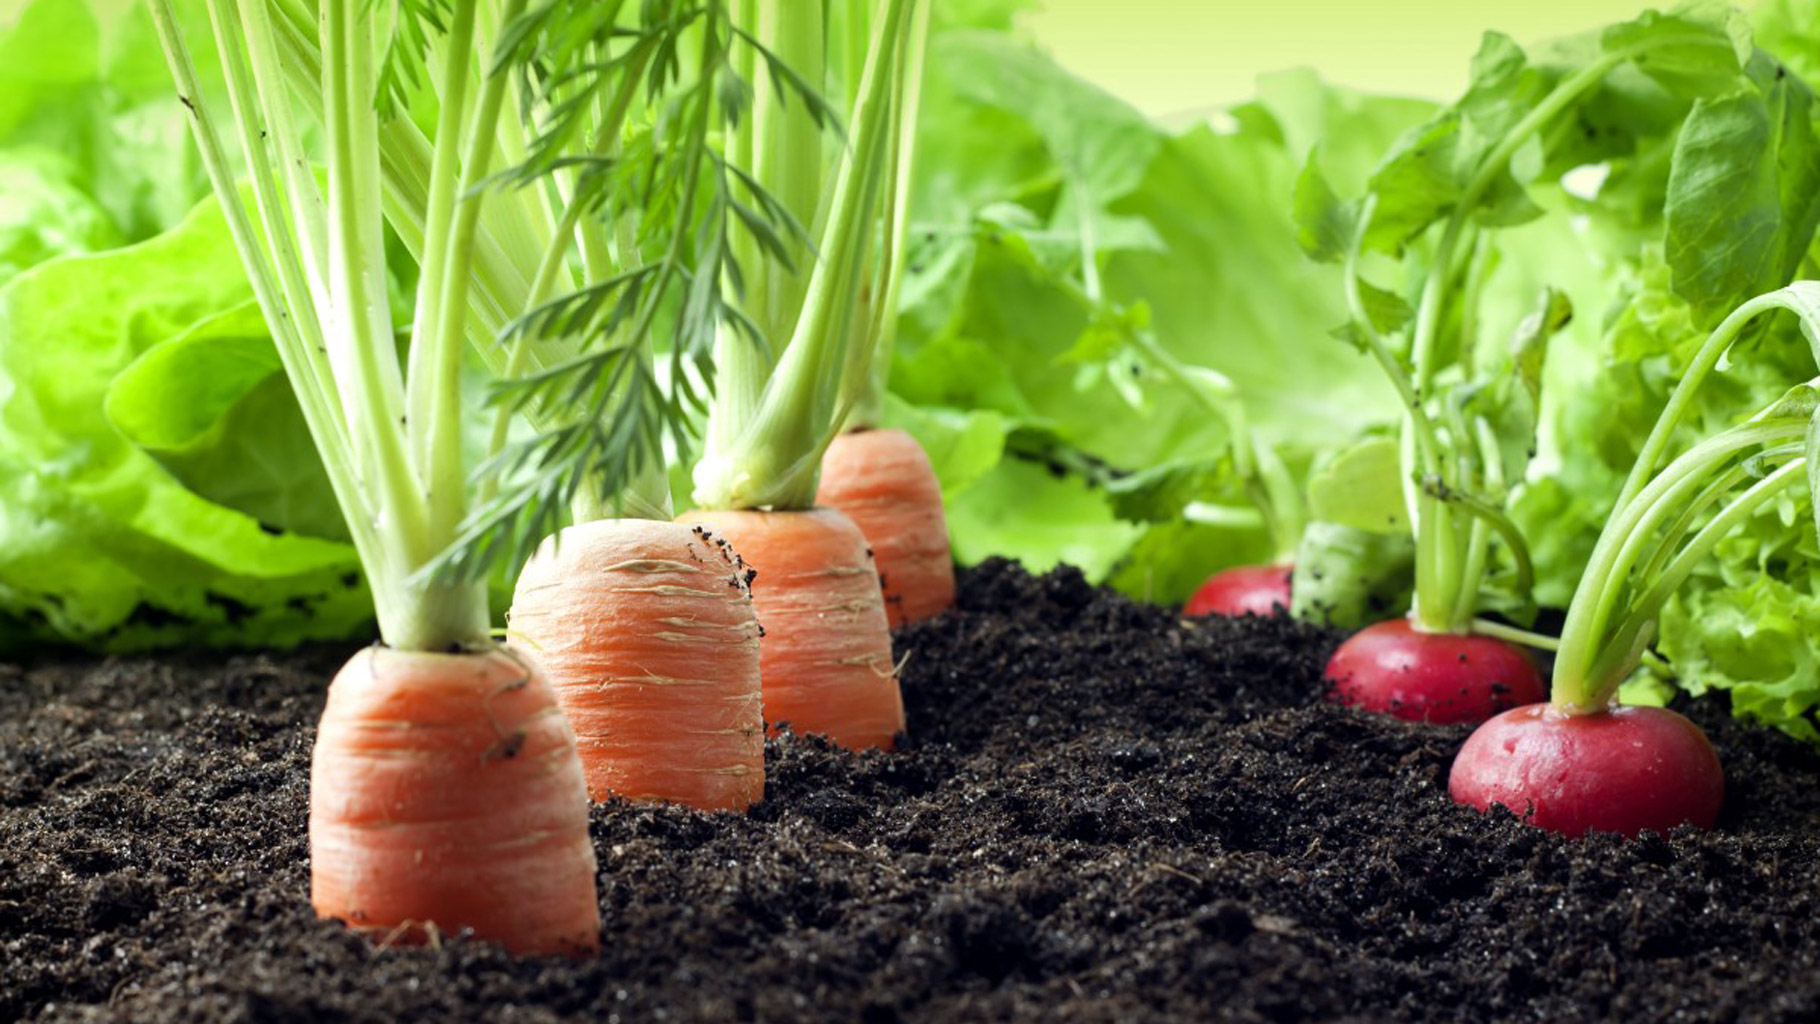 The Organic Farming Trend Is Catching One Are You With It?